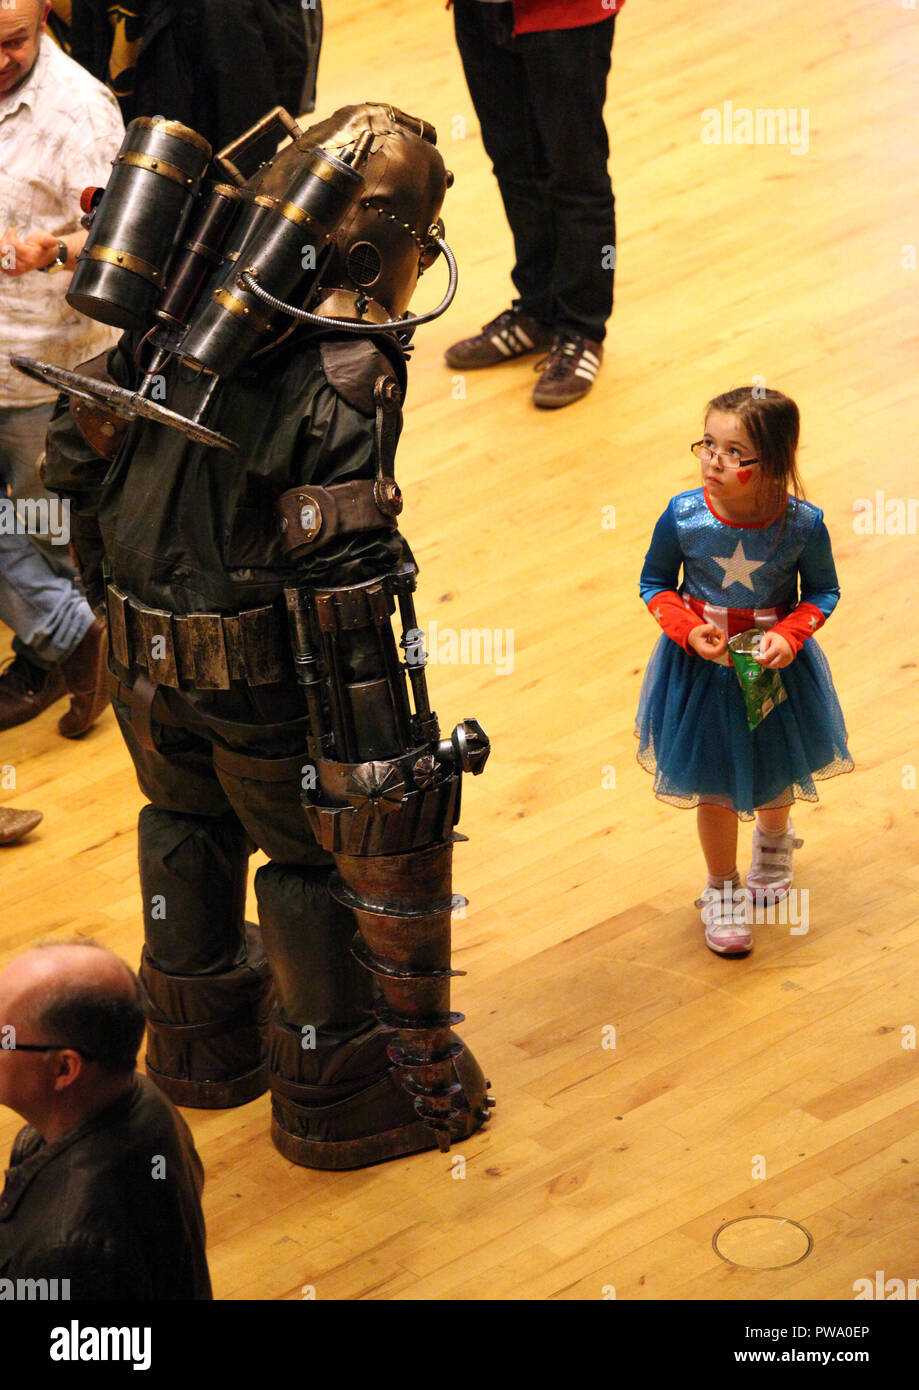 Sci-fi convention with robot and small girl super hero - Stock Image